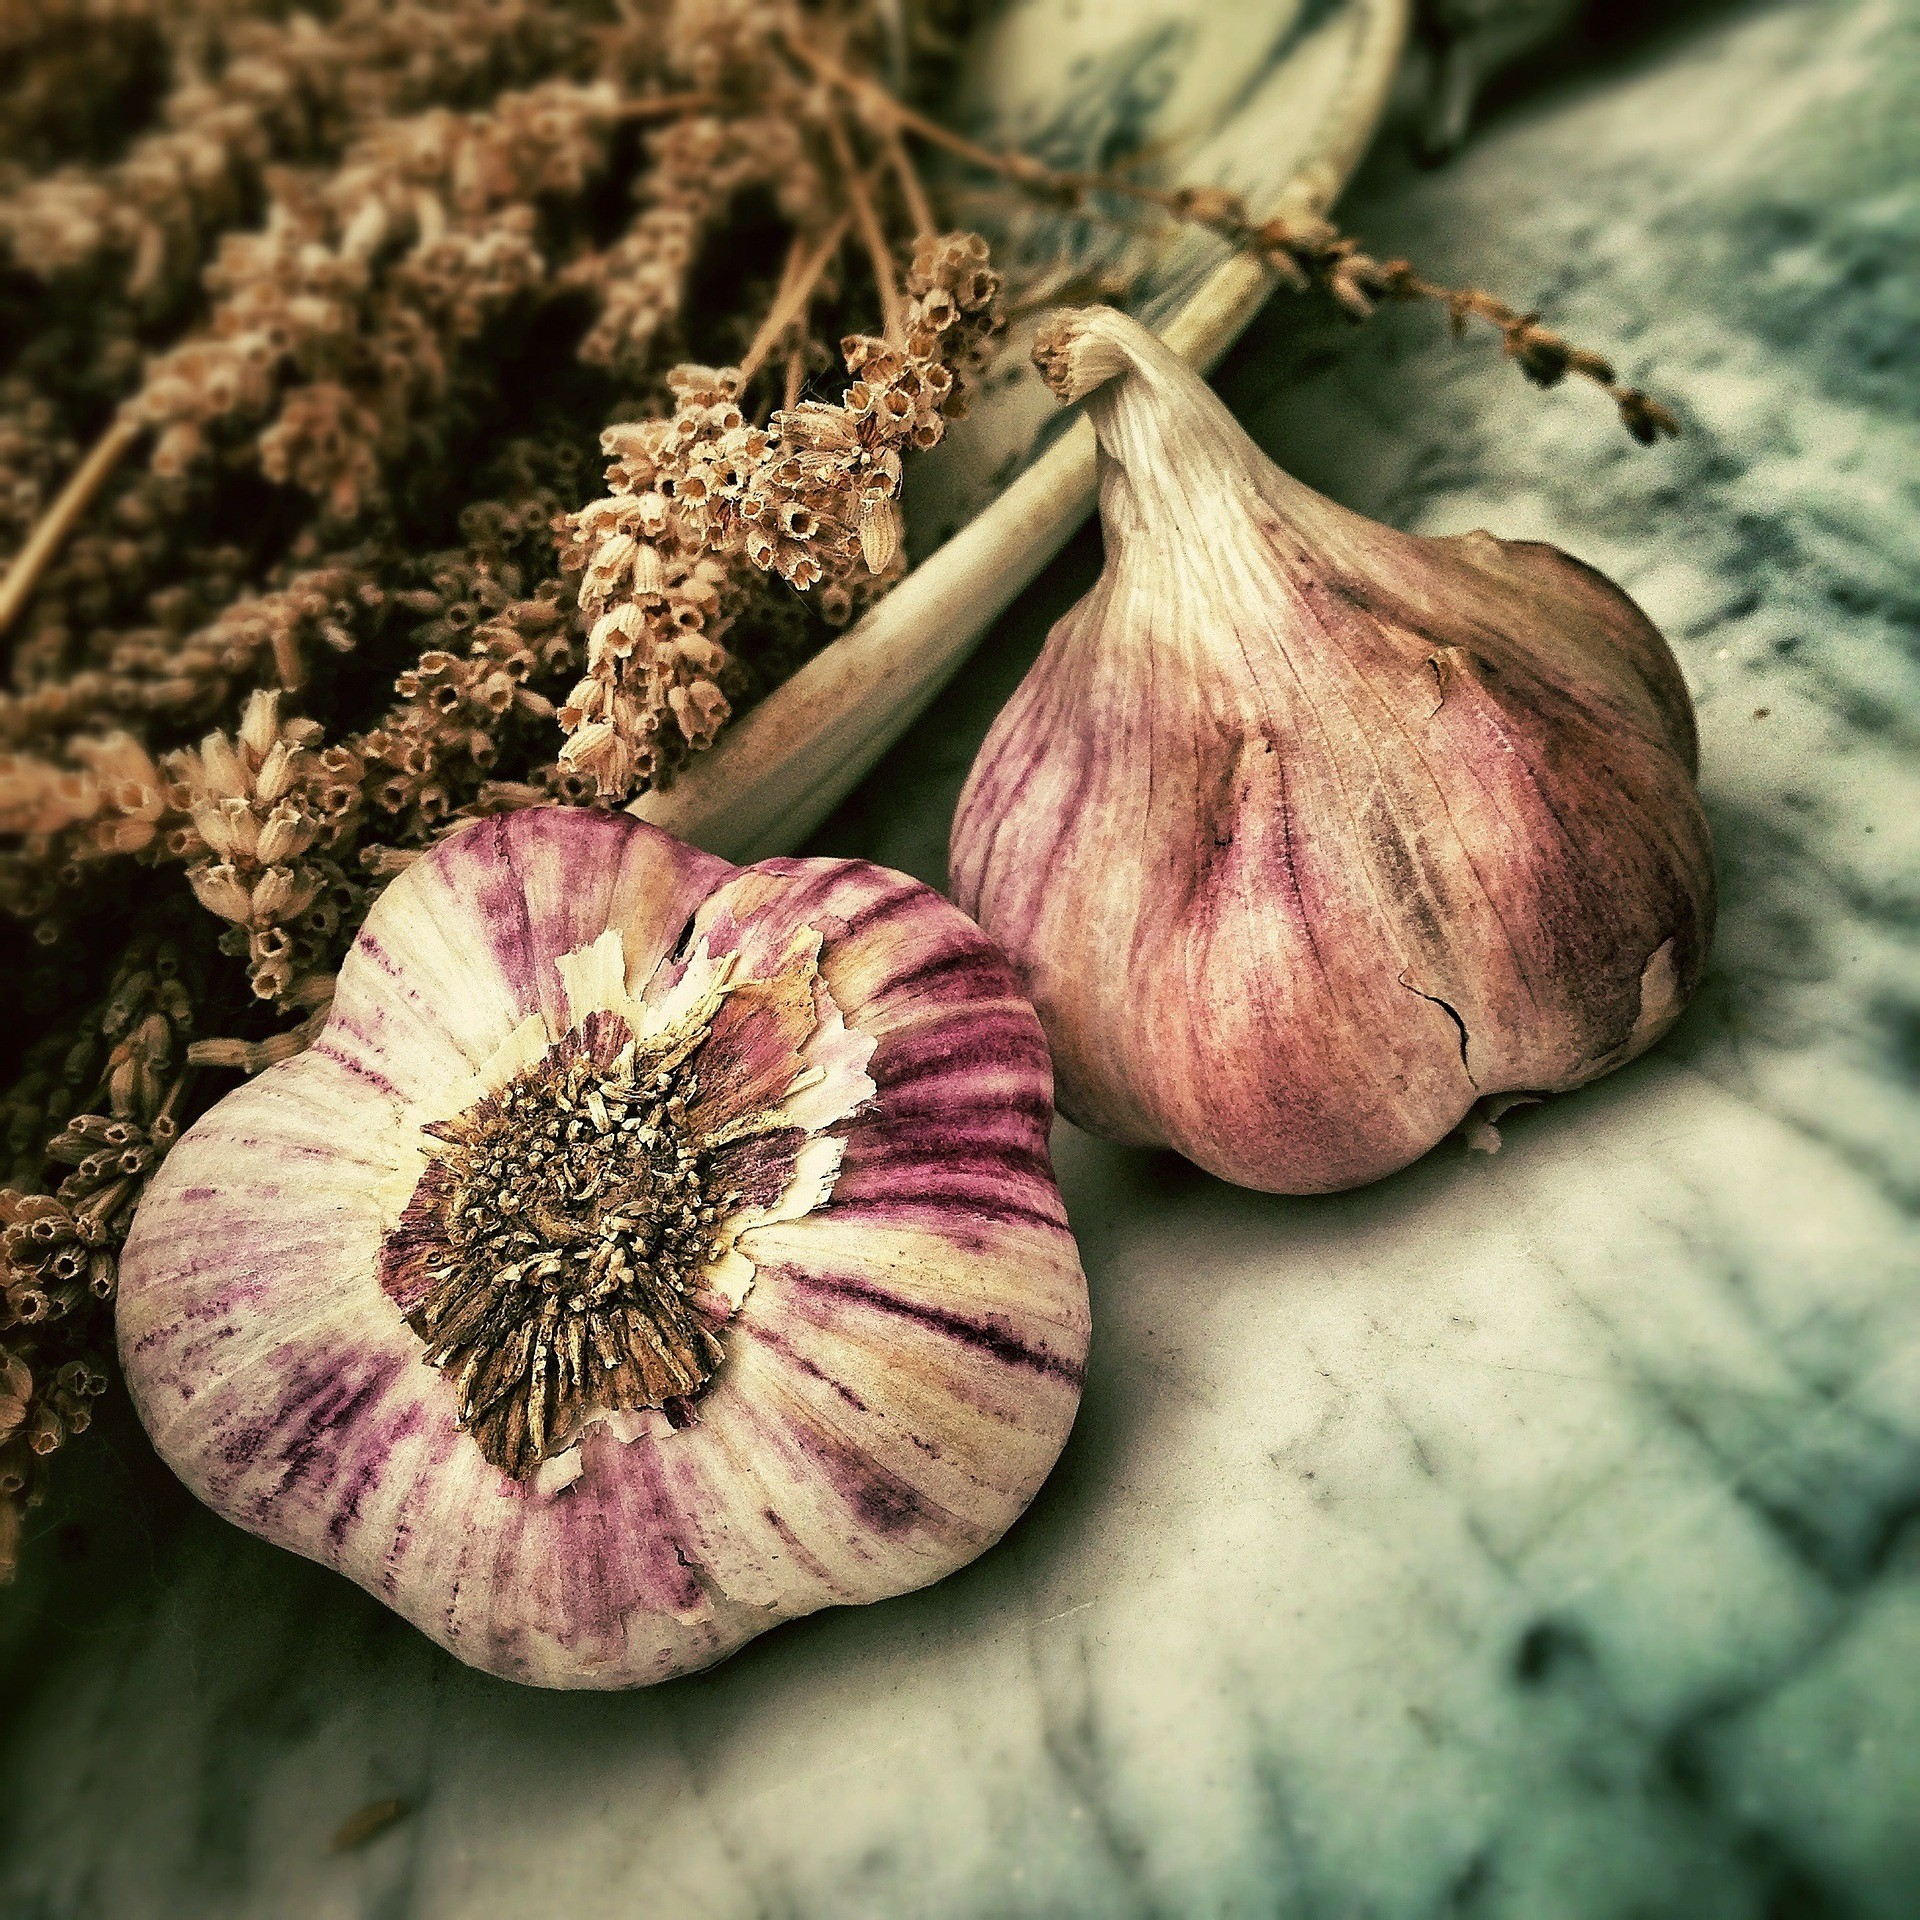 Garlic to reduce inflammation